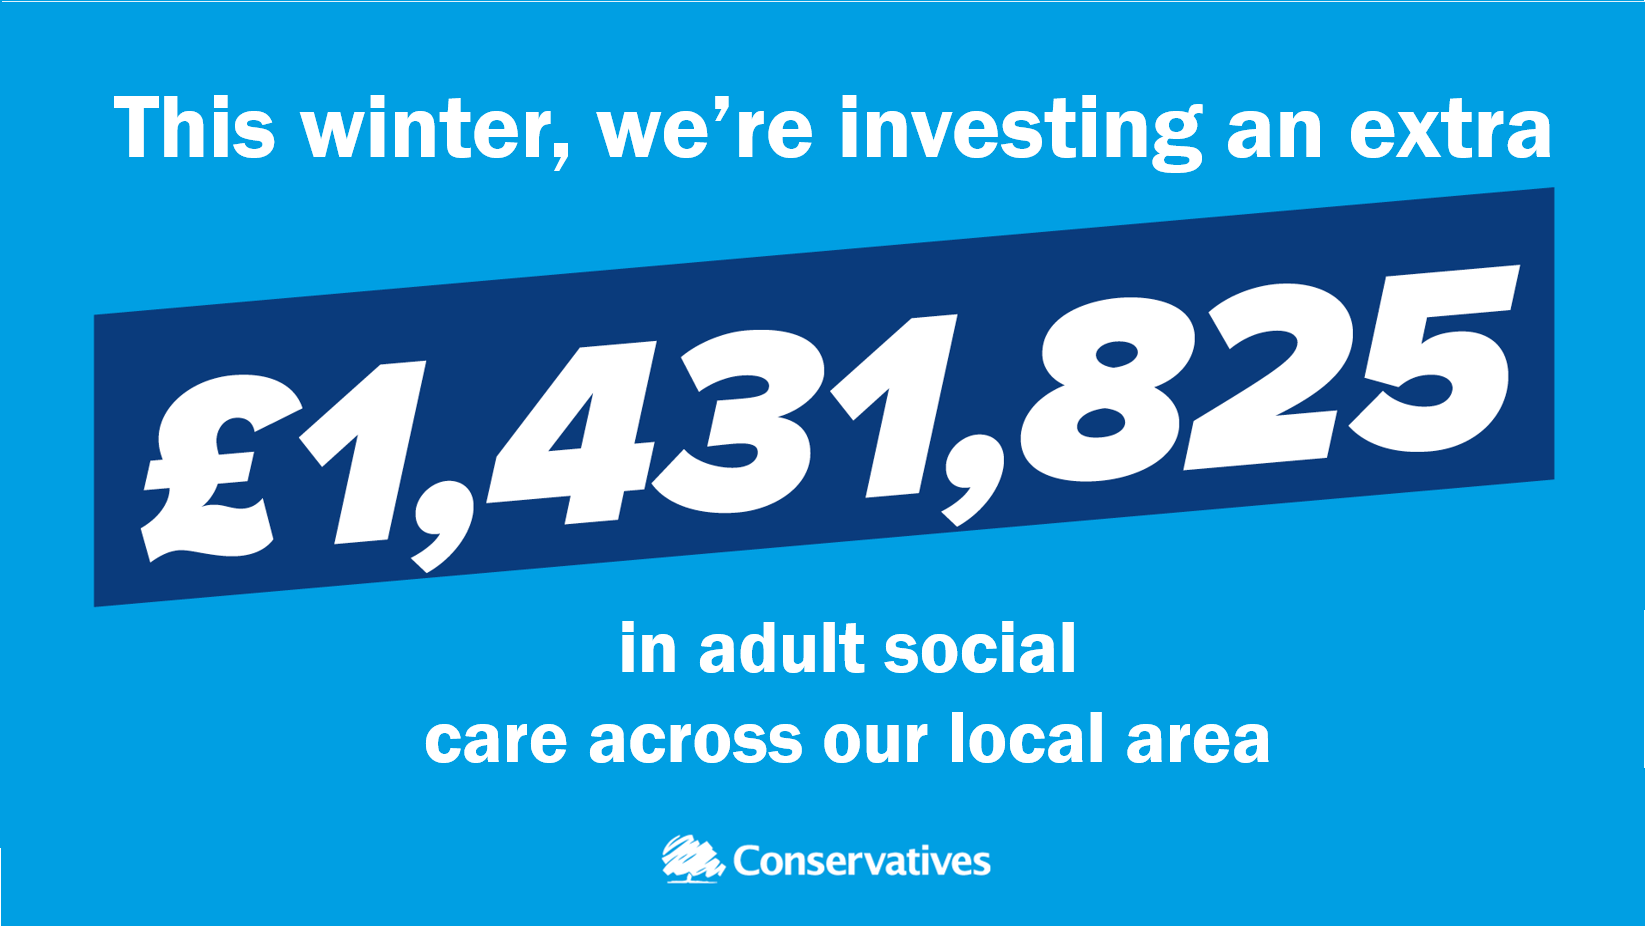 Adult Social Care Funding Boost